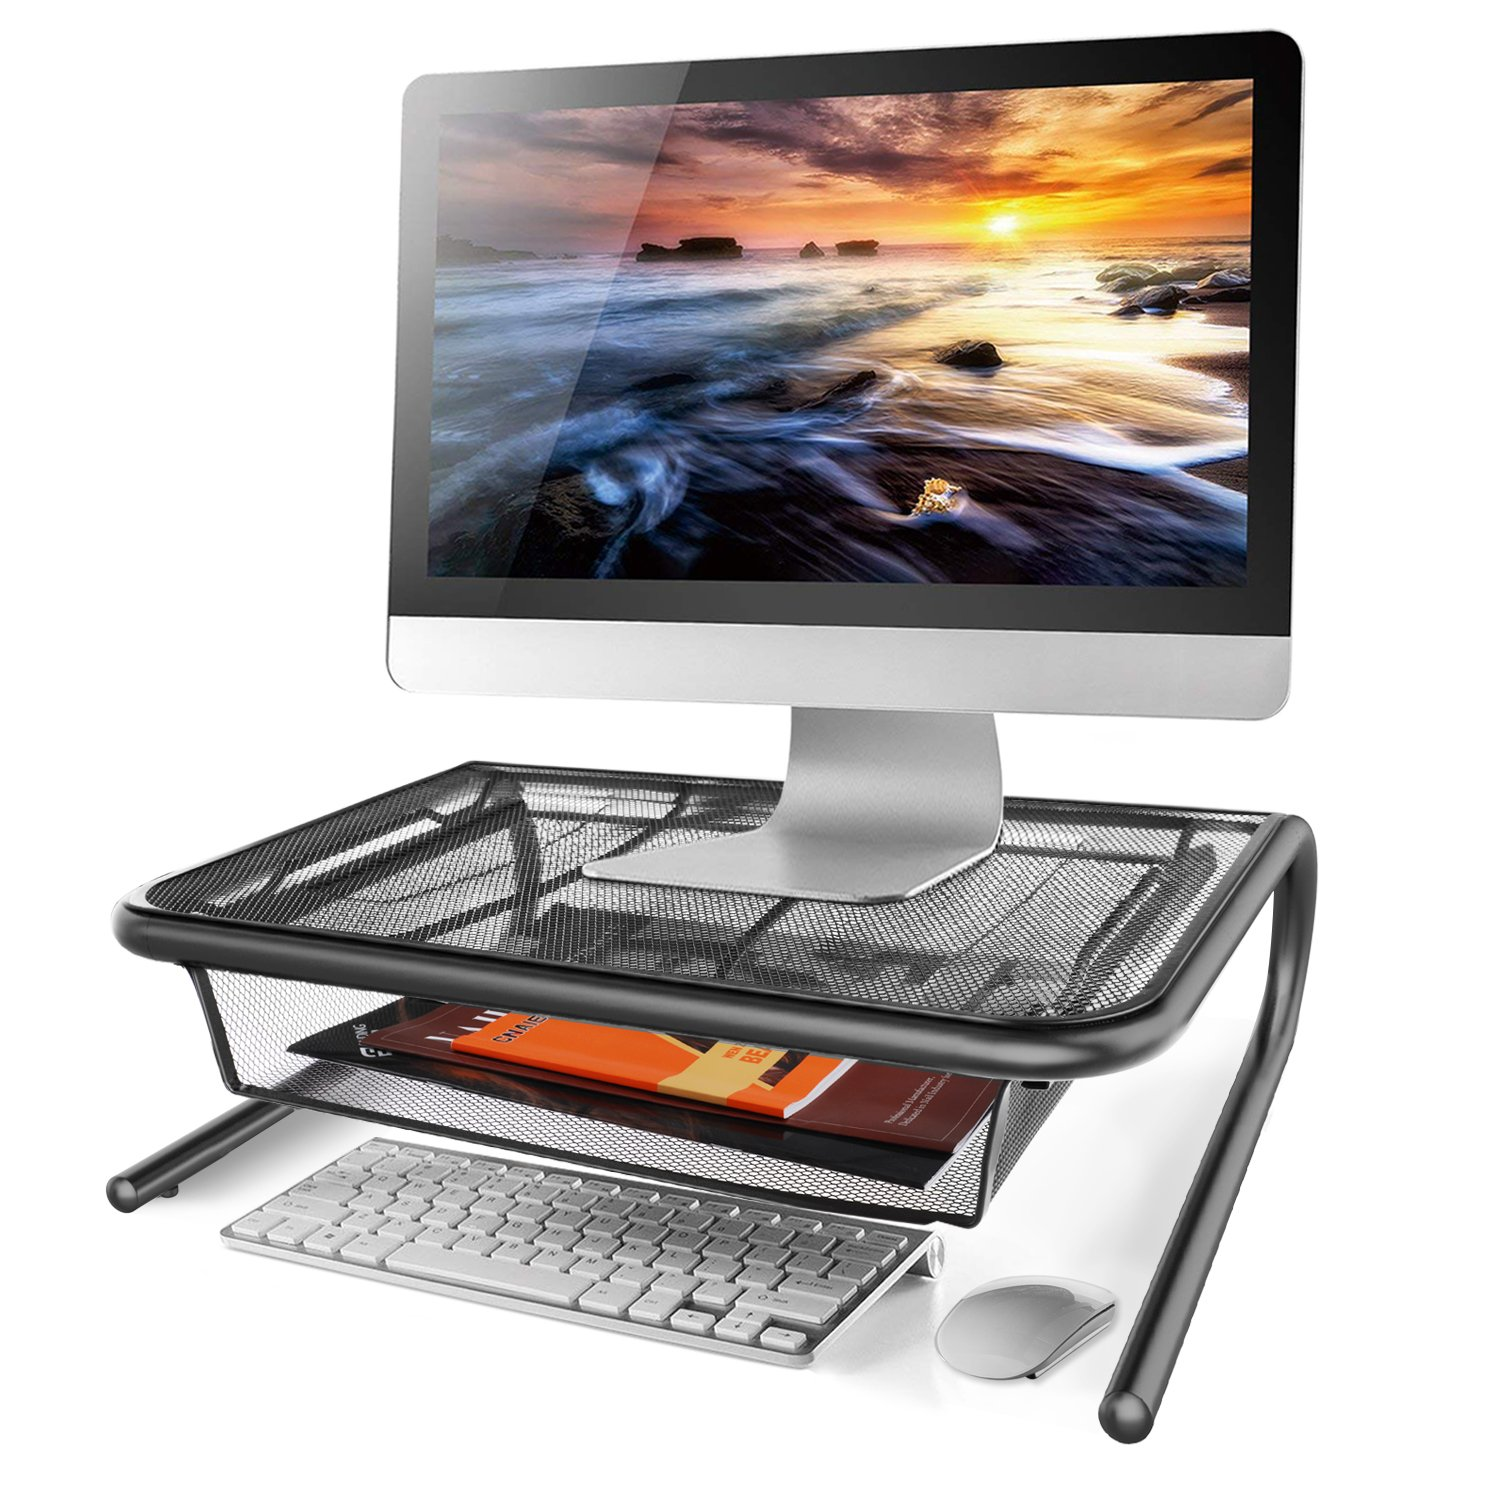 Monitor Stand Riser with Pull Out Storage Drawer - Mesh Metal Printer Holder with Ventilated Surface for Computer, Laptop, Printers - Keeps Your Devices Cool & Prevents Overheating - Premium Computer by HUANUO (Image #2)